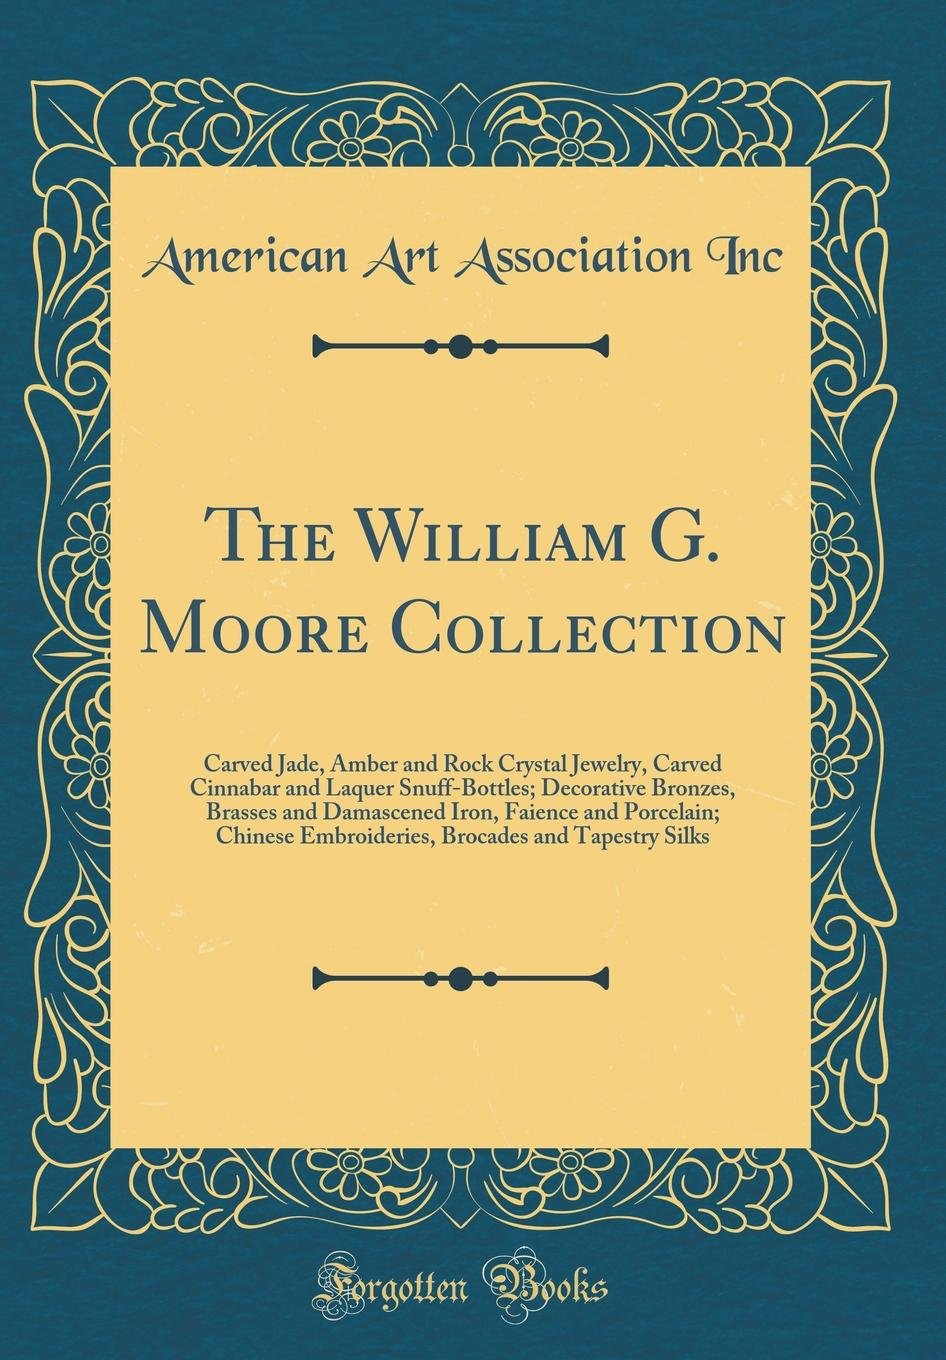 Download The William G. Moore Collection: Carved Jade, Amber and Rock Crystal Jewelry, Carved Cinnabar and Laquer Snuff-Bottles; Decorative Bronzes, Brasses ... Embroideries, Brocades and Tapestry Silks PDF